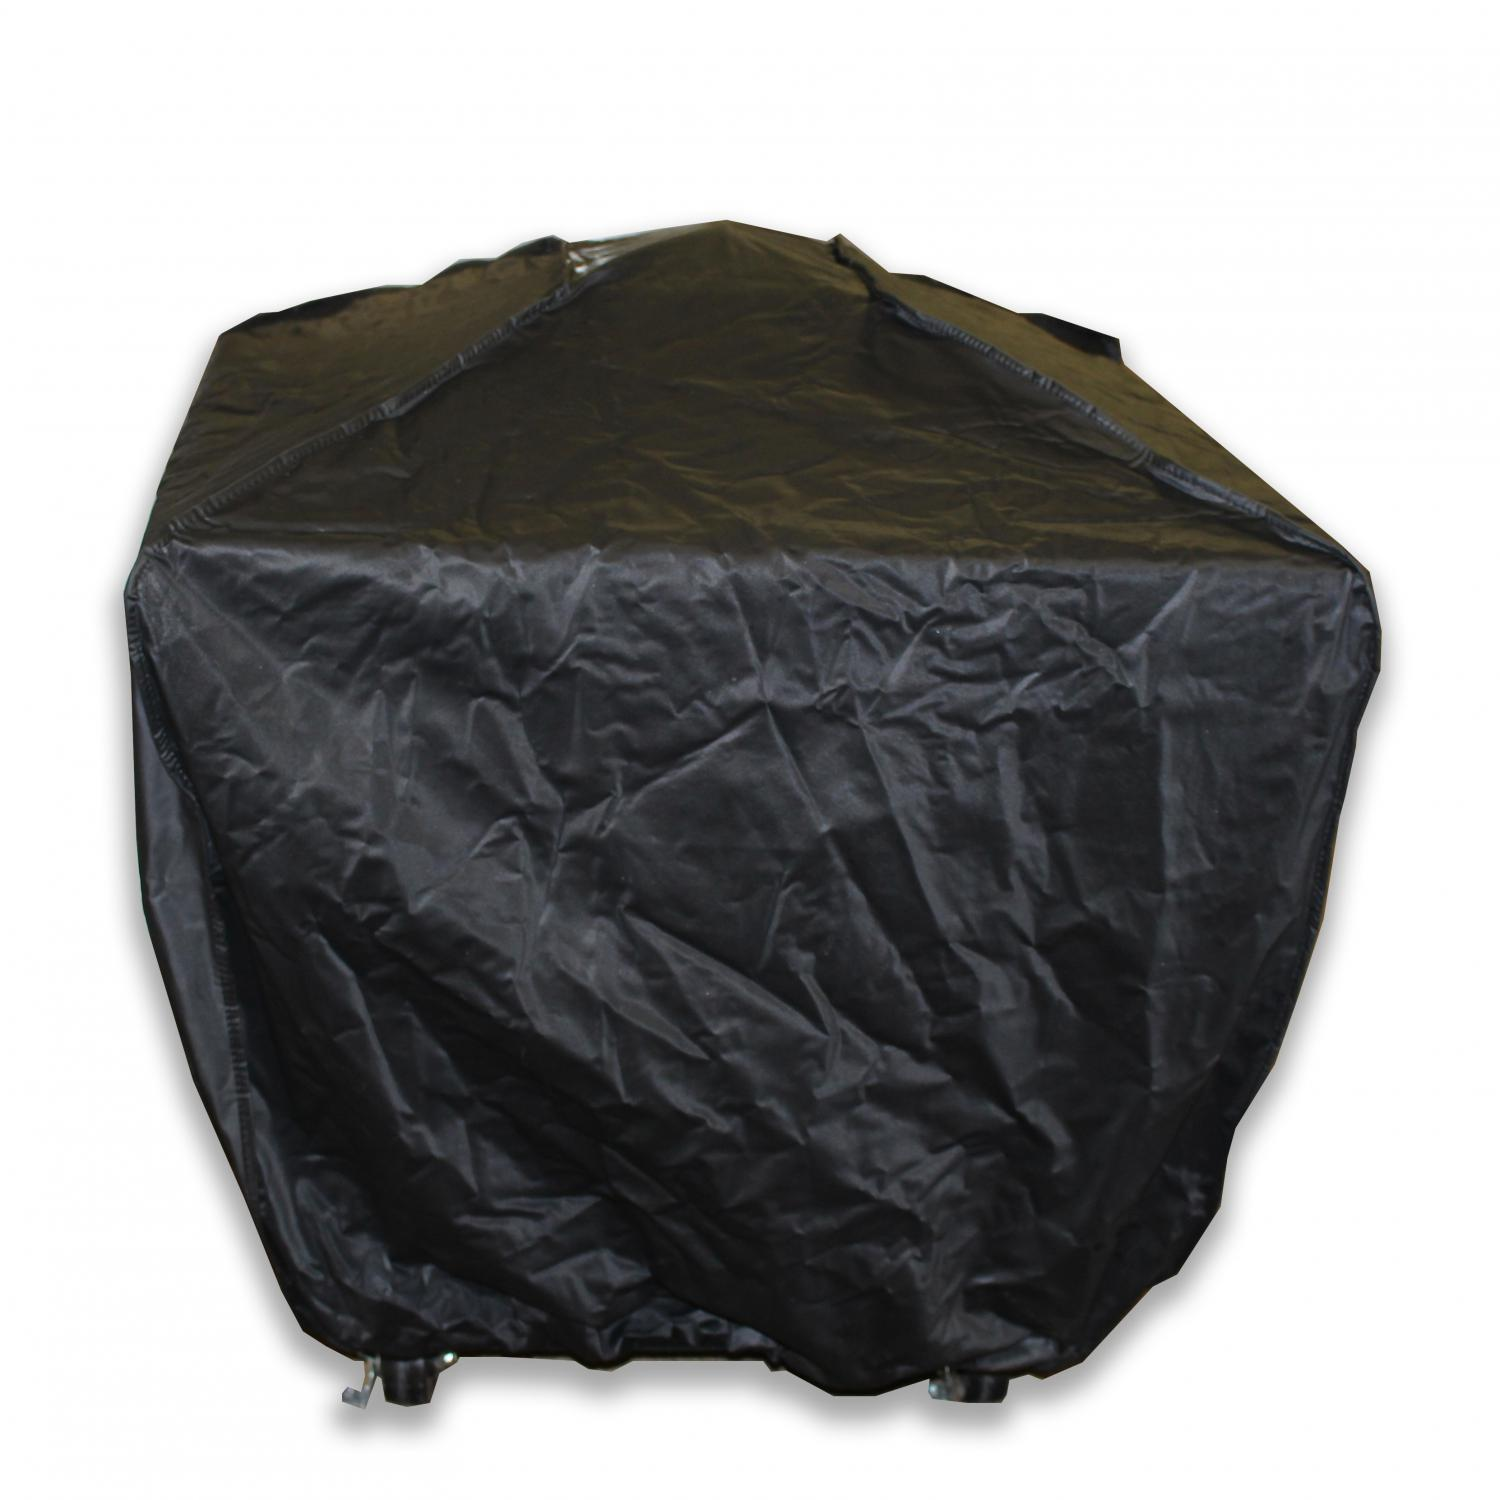 Blaze Outdoor Products Pellet Fire Pit Cover - 42fpcv - 42fpcvr